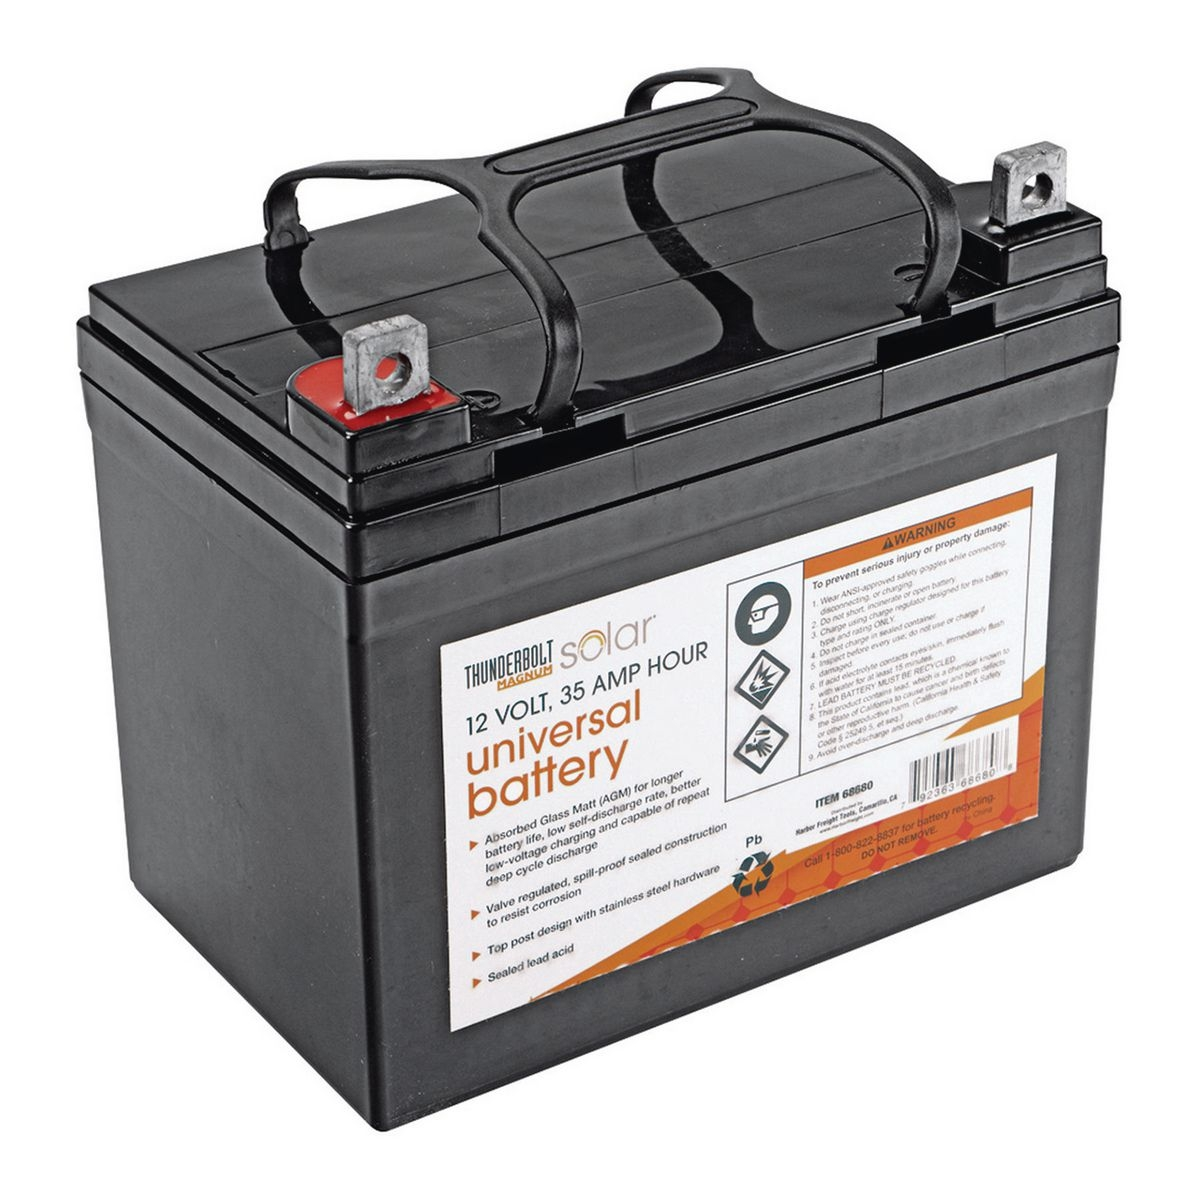 12 volt 35 amp hour sealed lead acid battery. Black Bedroom Furniture Sets. Home Design Ideas